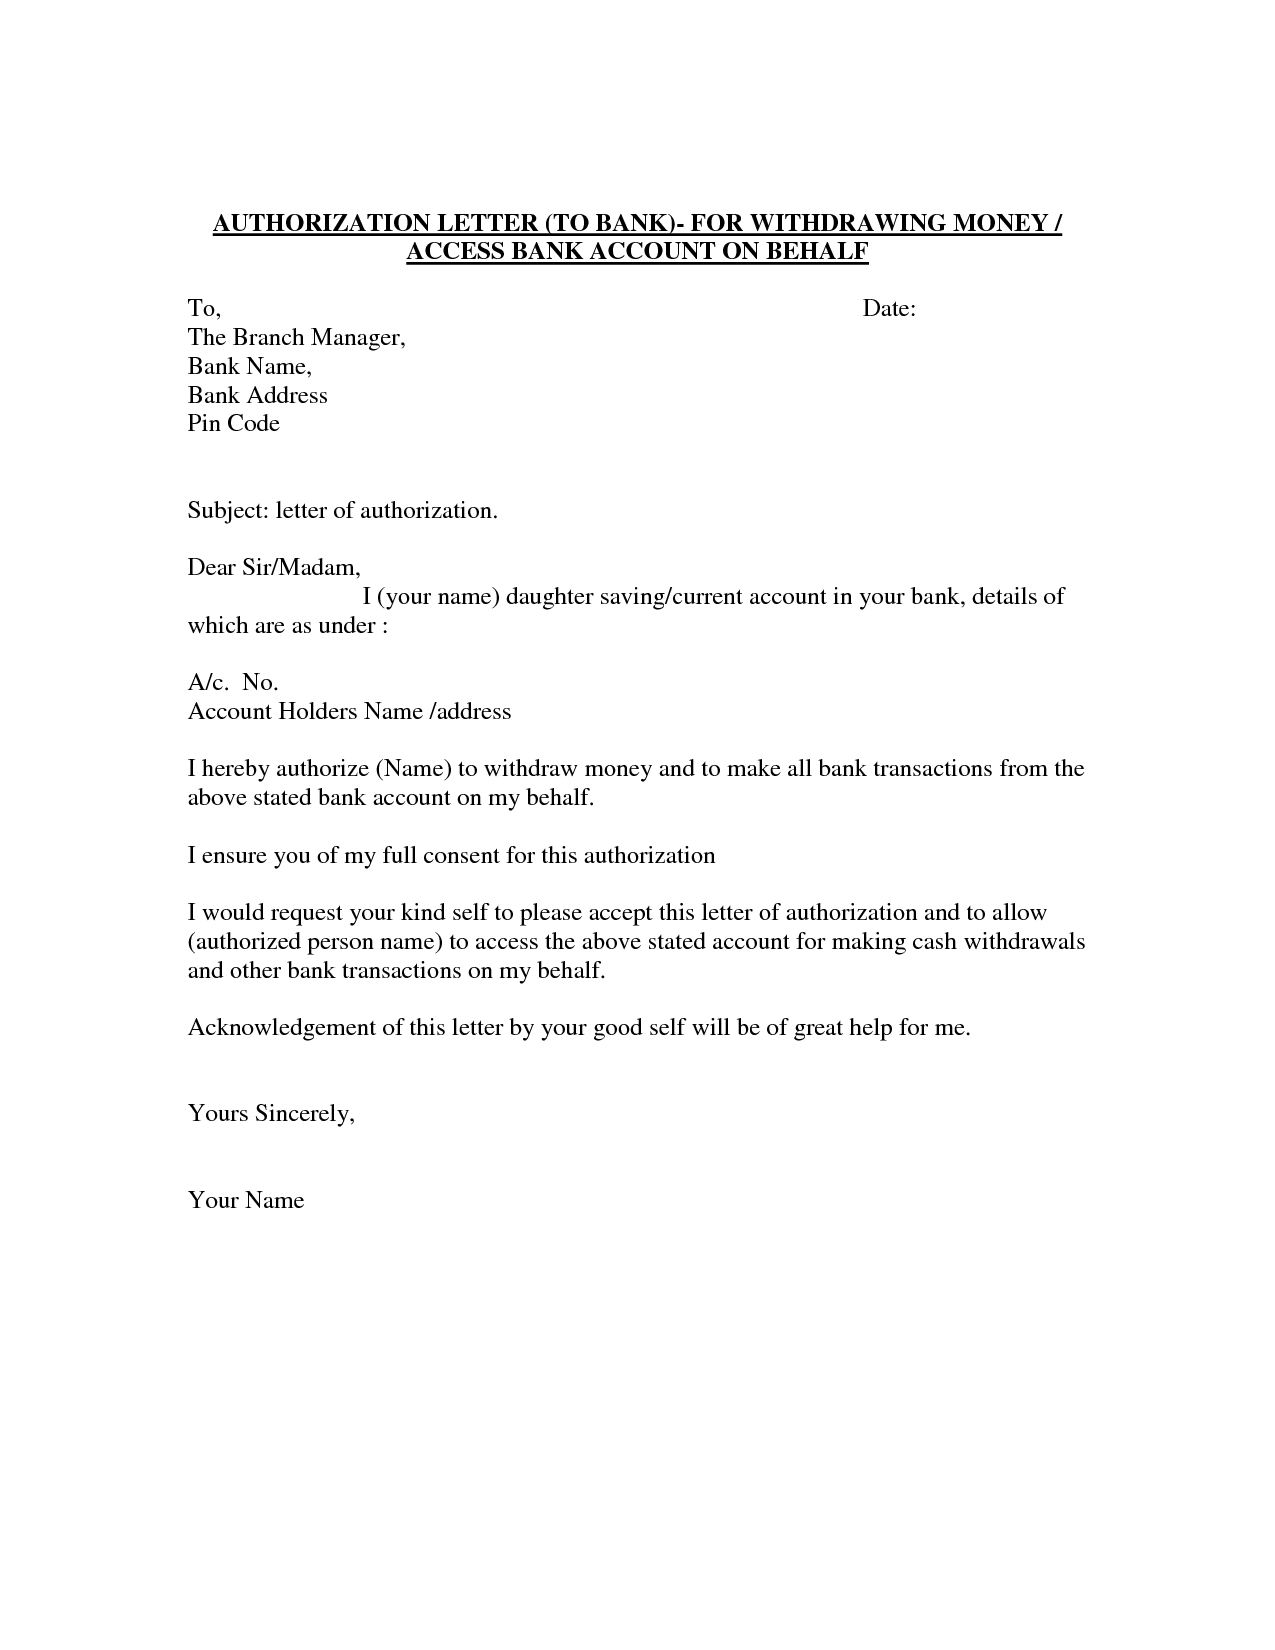 Write A Letter to Your Future Self Template - Authorization Letter Template Best Car Galleryformal Letter